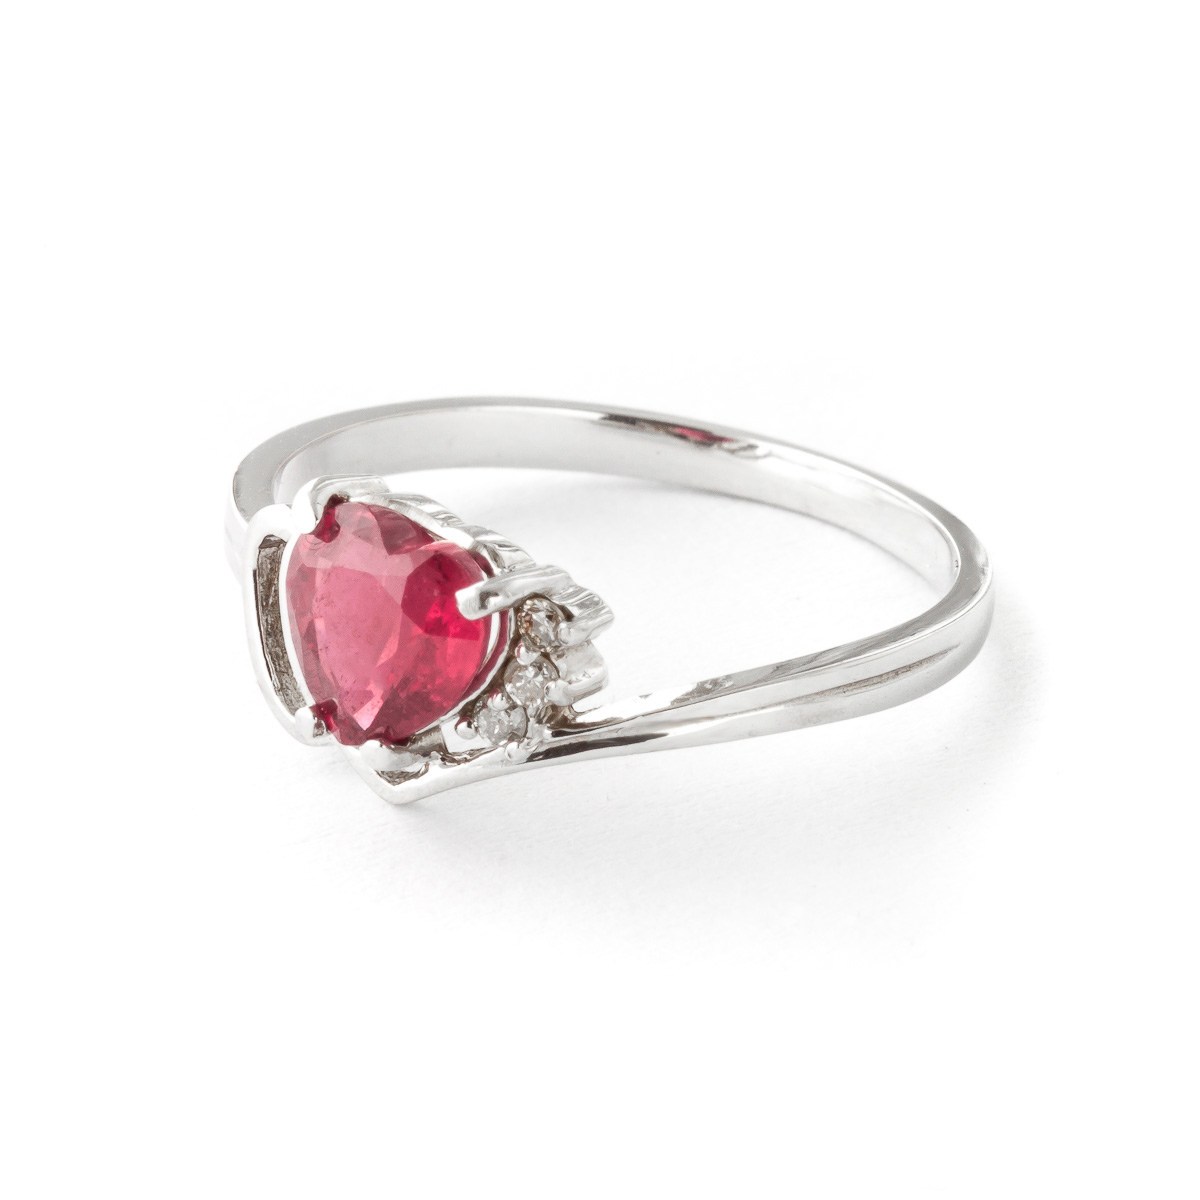 Ruby and Diamond Devotion Ring 1.0ct in 9ct White Gold